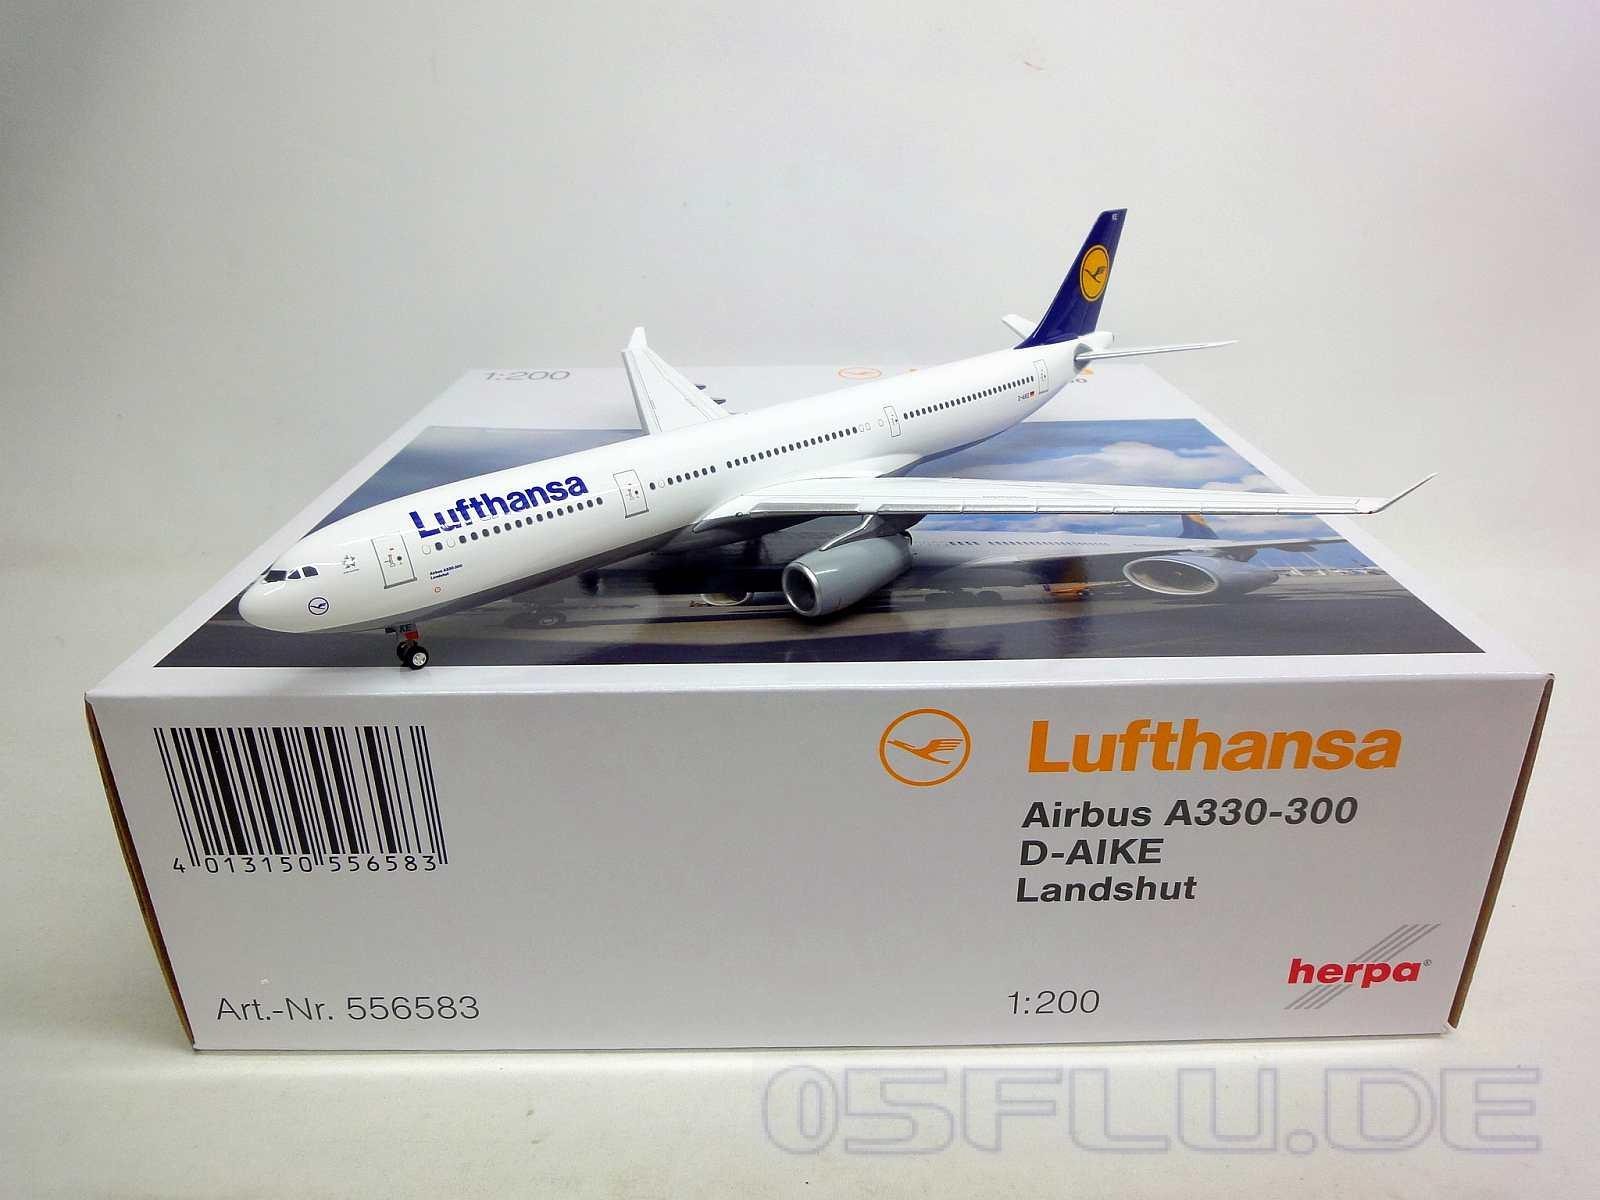 herpa 1 200 556583 lufthansa airbus a330 300 landshut neu ebay. Black Bedroom Furniture Sets. Home Design Ideas